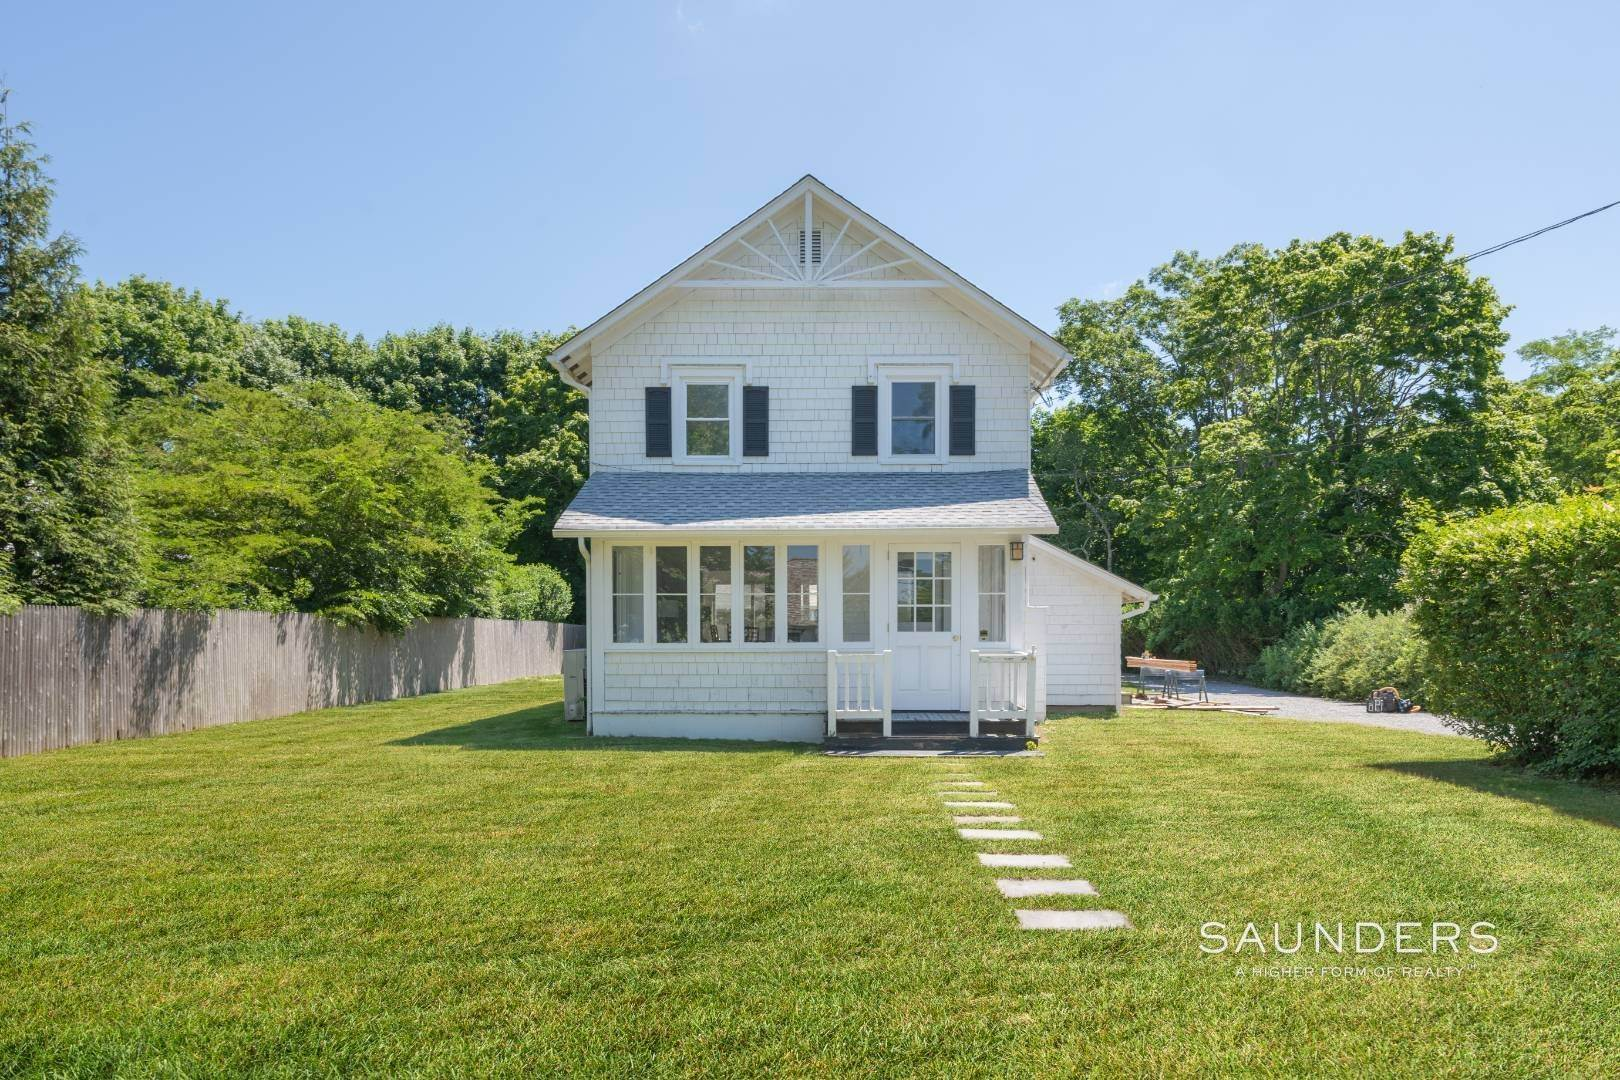 Single Family Homes for Sale at Charming Quogue Cottage South Of The Highway 34 Lamb Avenue, Quogue Village, Southampton Town, NY 11959